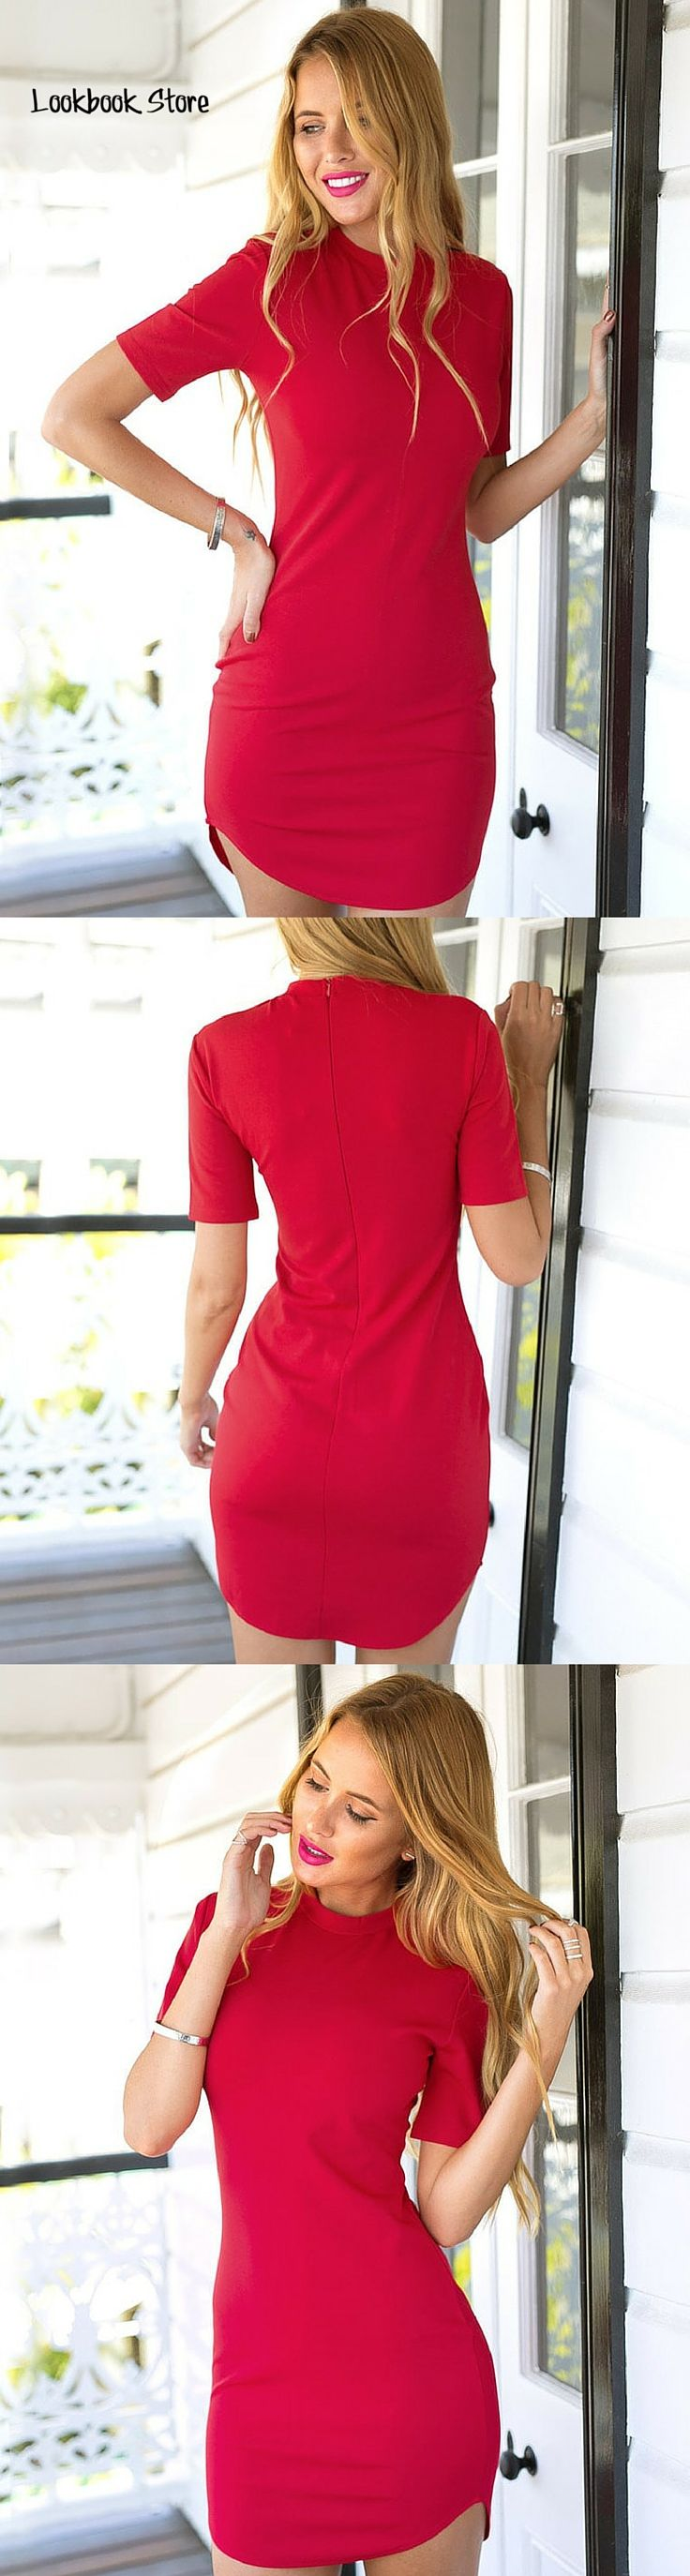 Lookbook Store Amazon // Let your romantic side out. And while you're at it, wear this red curved-hem bodycon dress as you go on a mushy date with your man along with candles and a good wine.